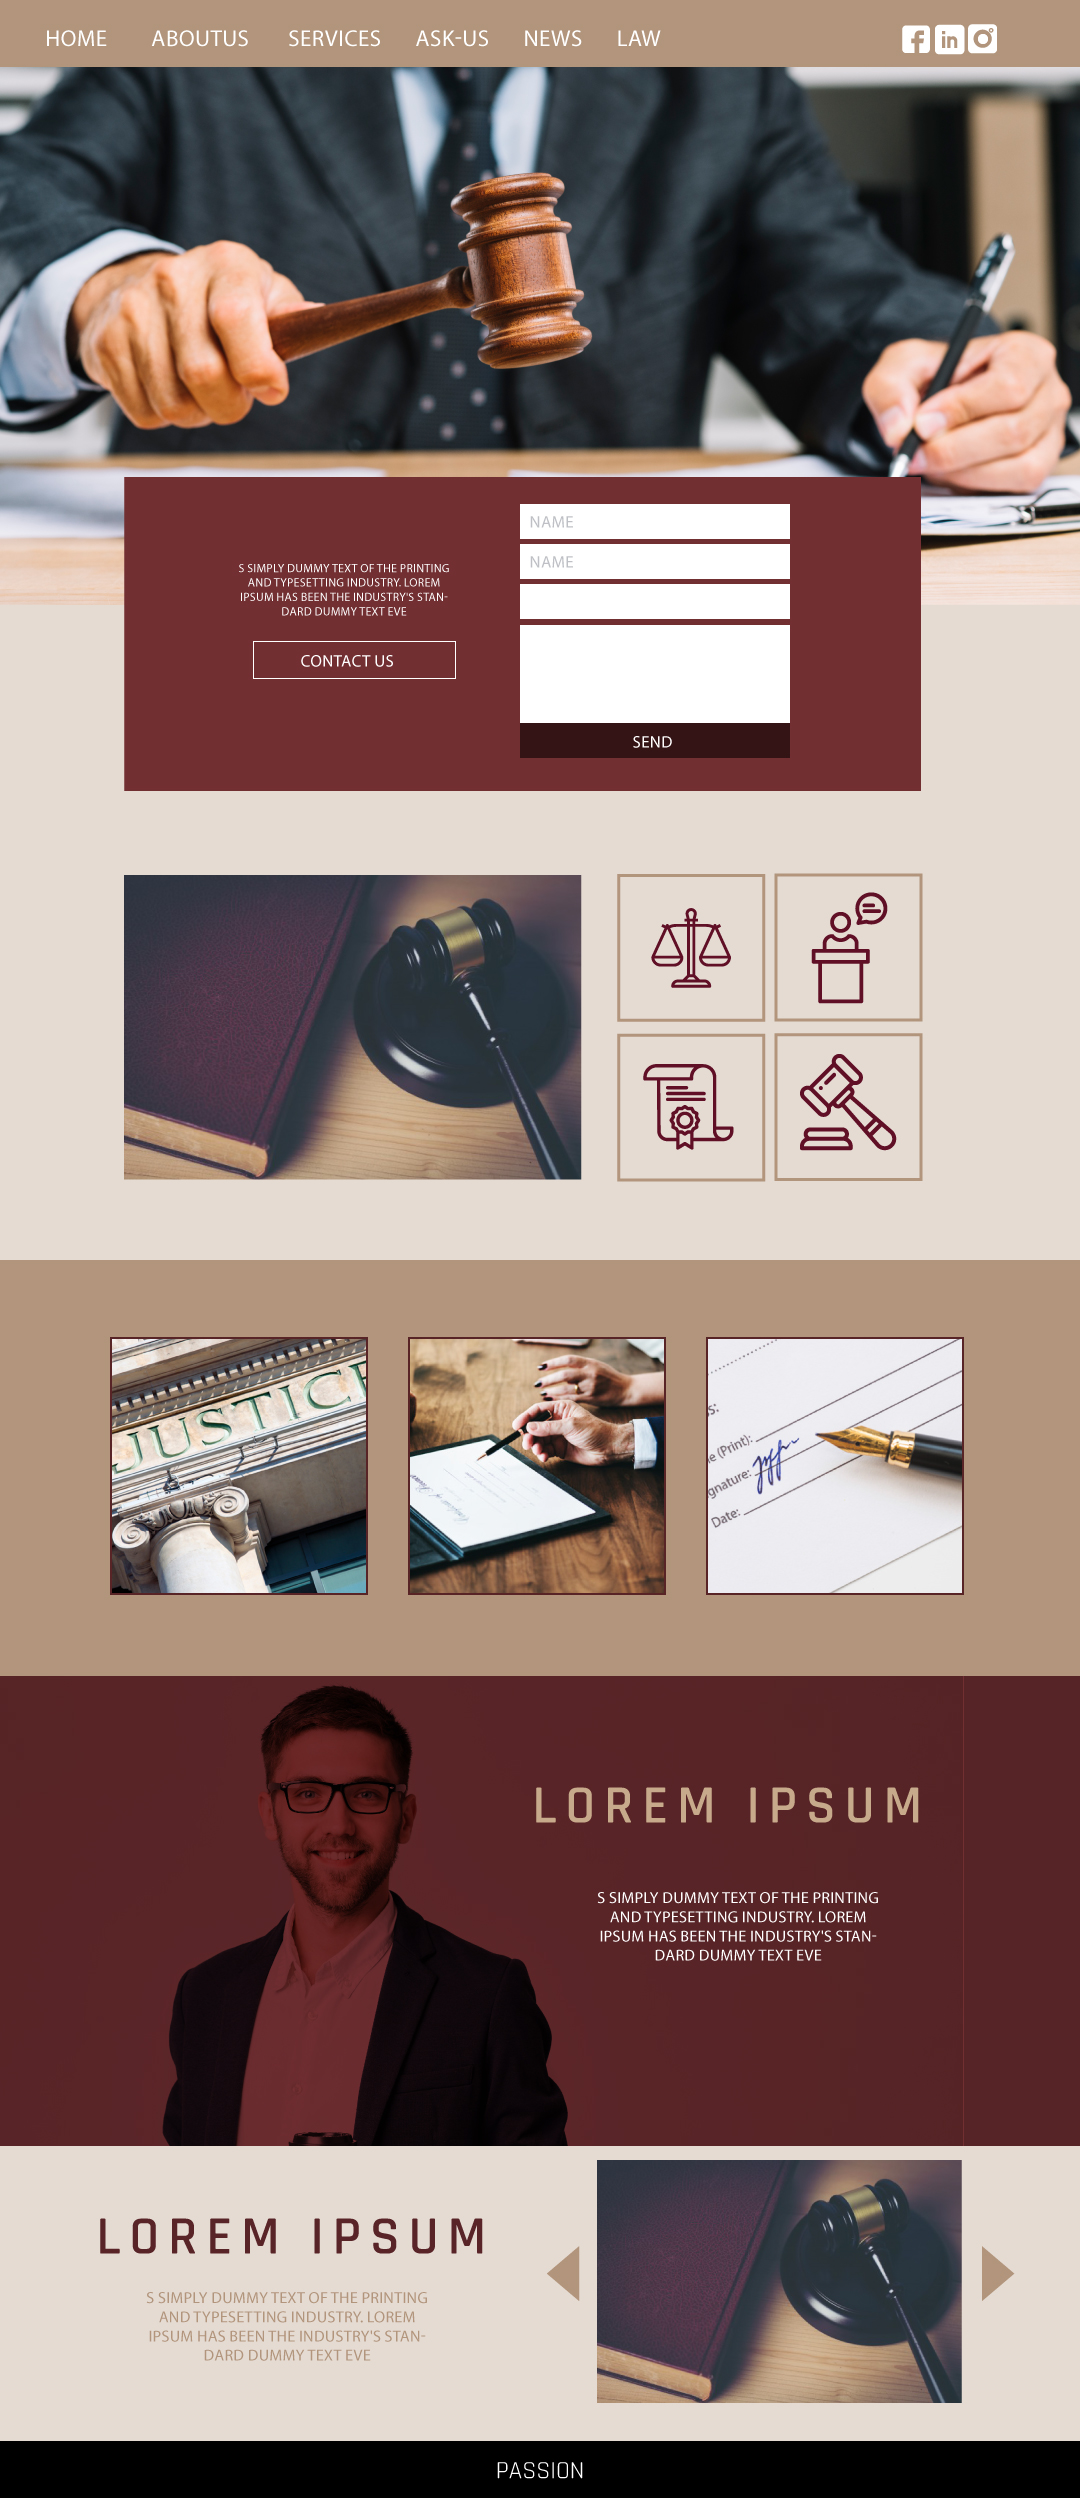 Designing a website template for a law company